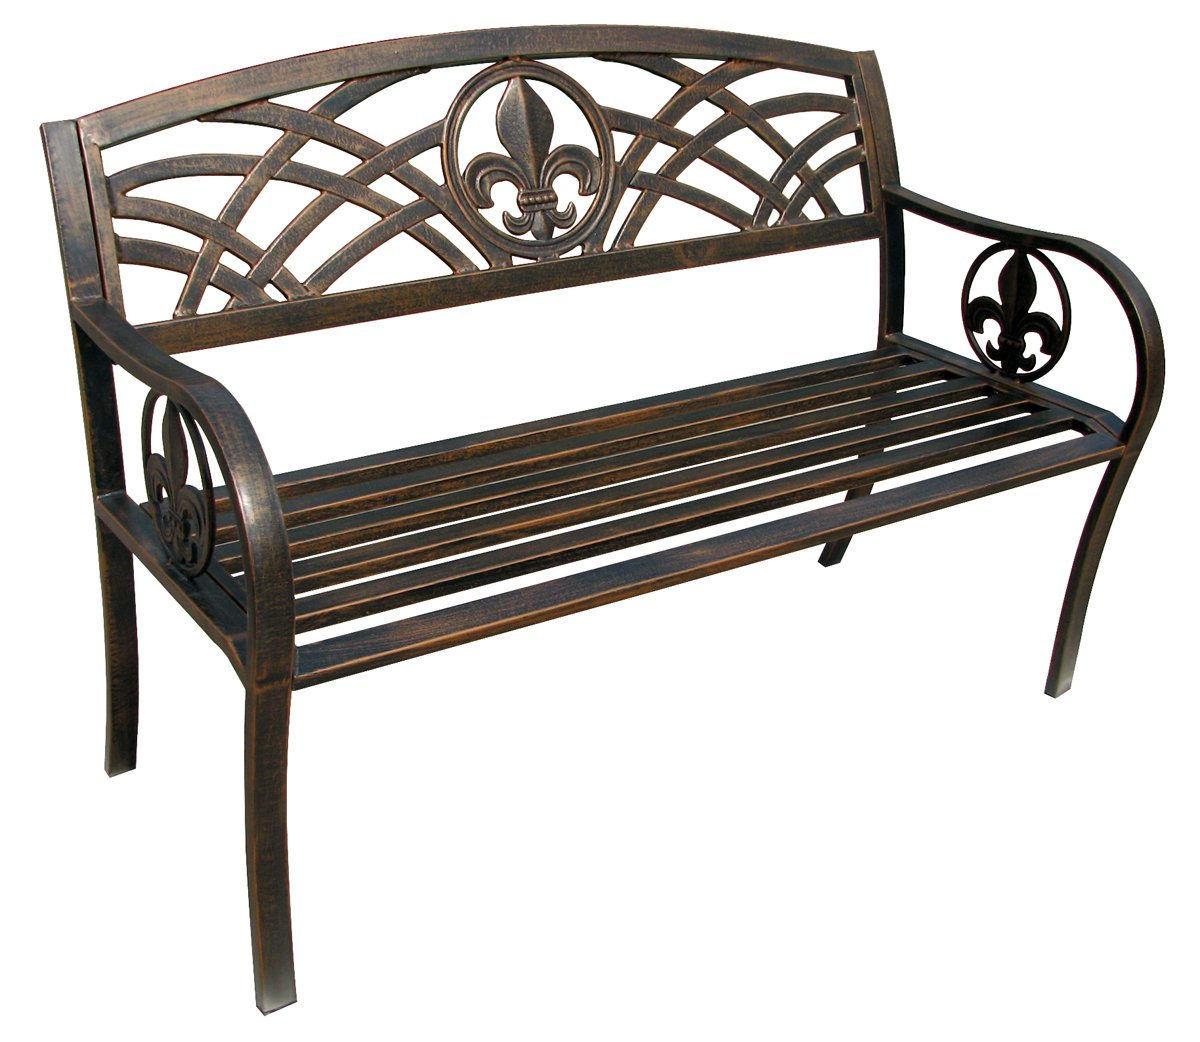 Amazon.com : Leigh Country TX94104 Char Log Fleur De Lis Metal Bench :  Patio, Lawn U0026 Garden